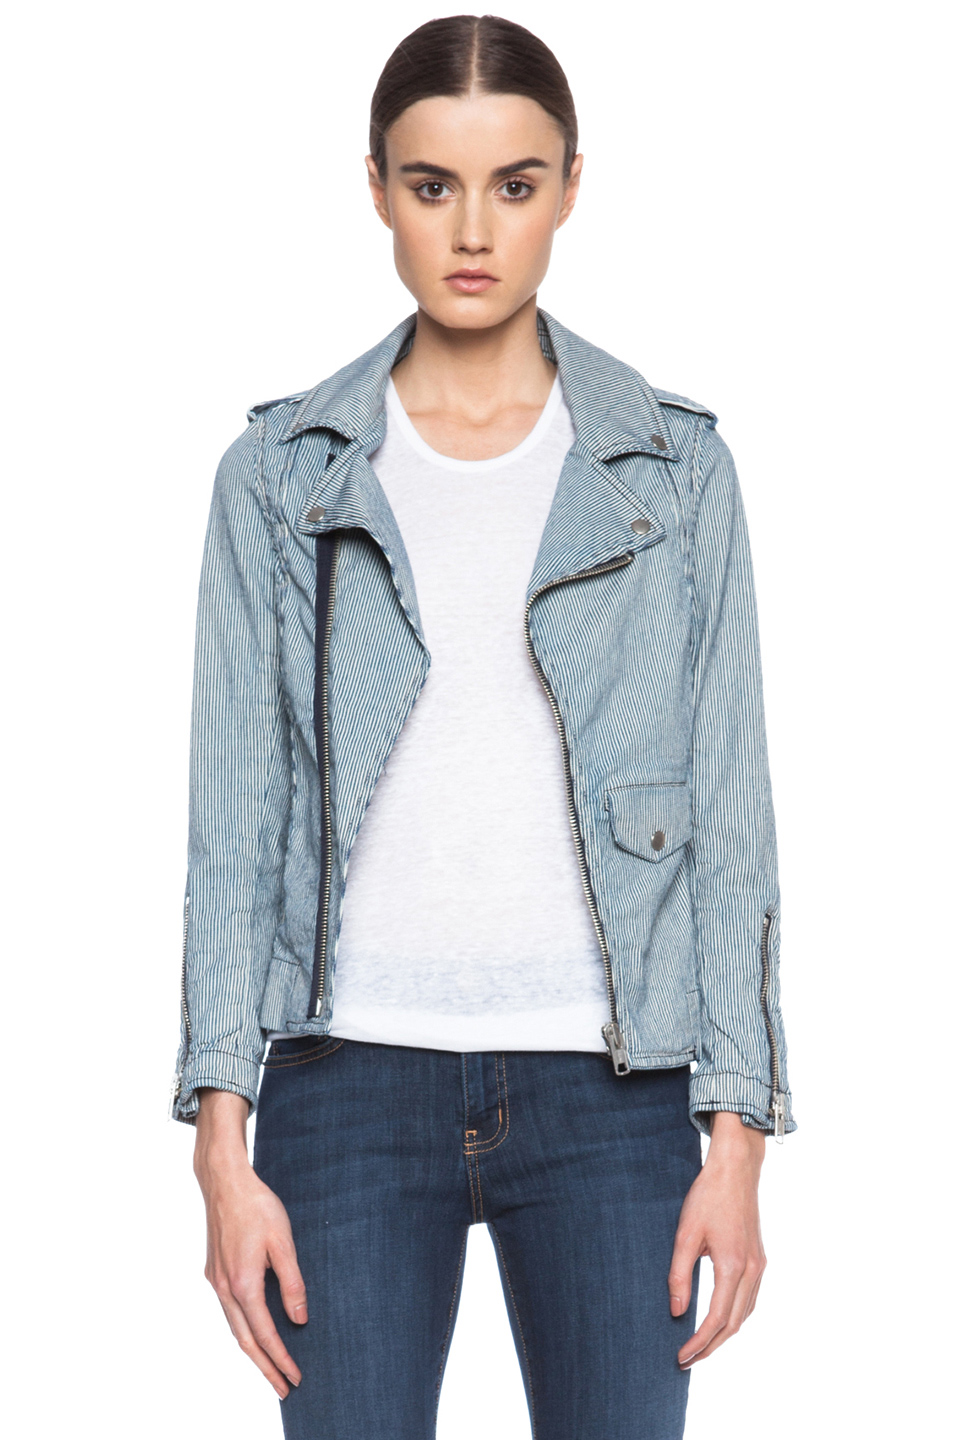 Nili Lotan|Denim Biker Jacket in Natural & Navy